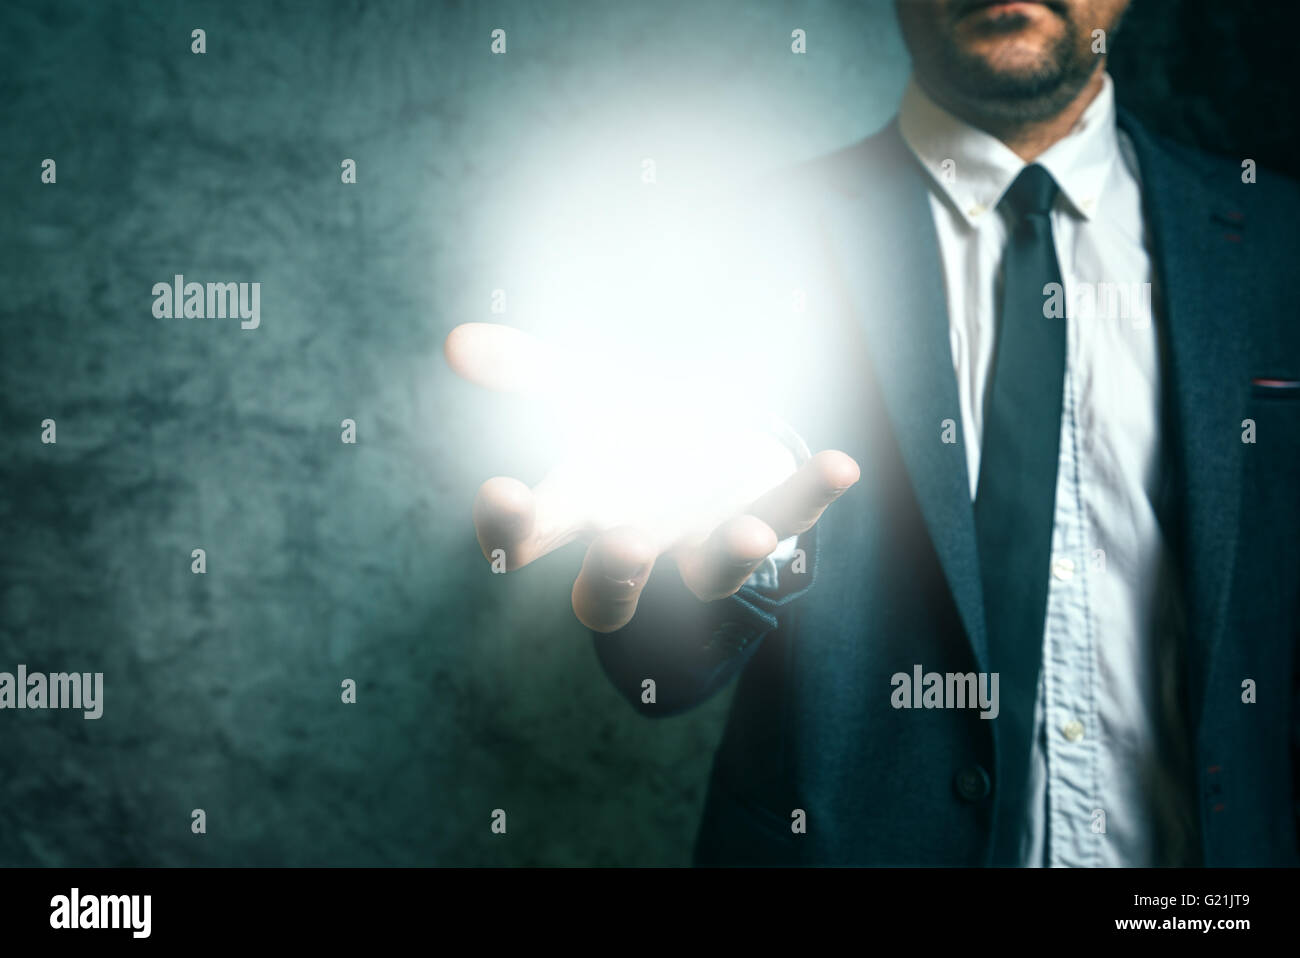 Business vision concept with elegant adult businessman holding bright light of new ideas in hand - Stock Image